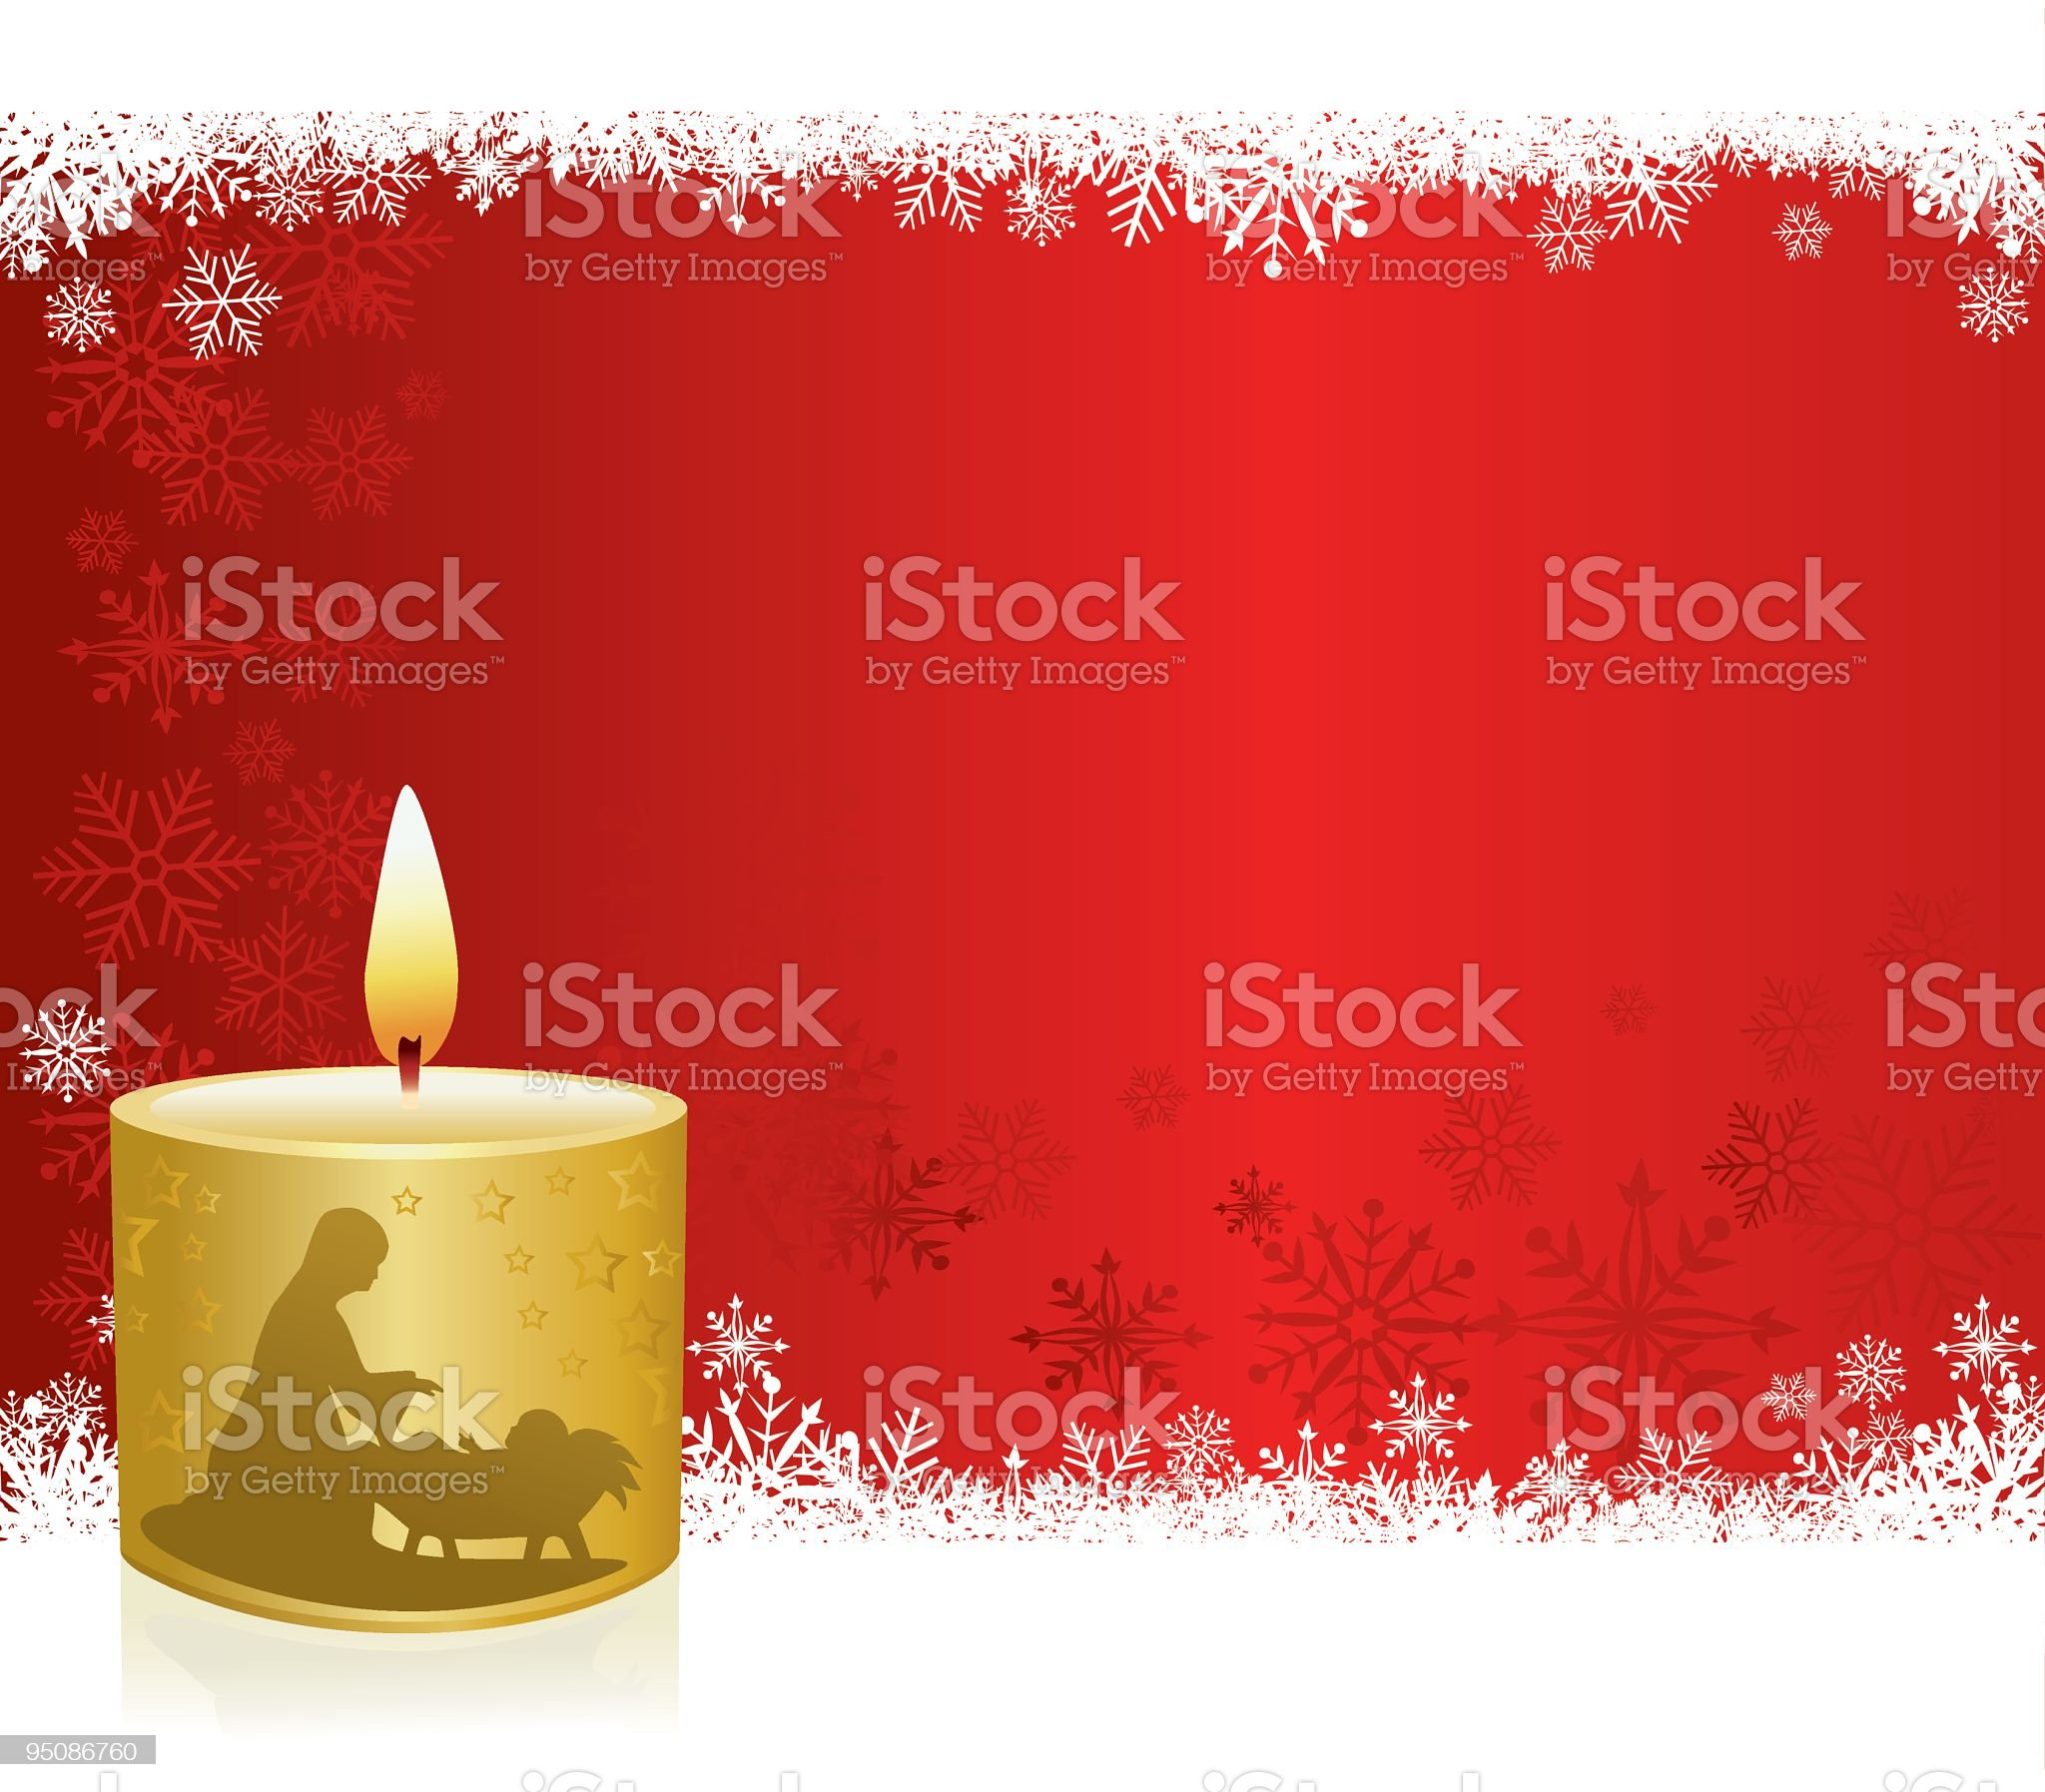 Christmas Candle royalty-free stock vector art